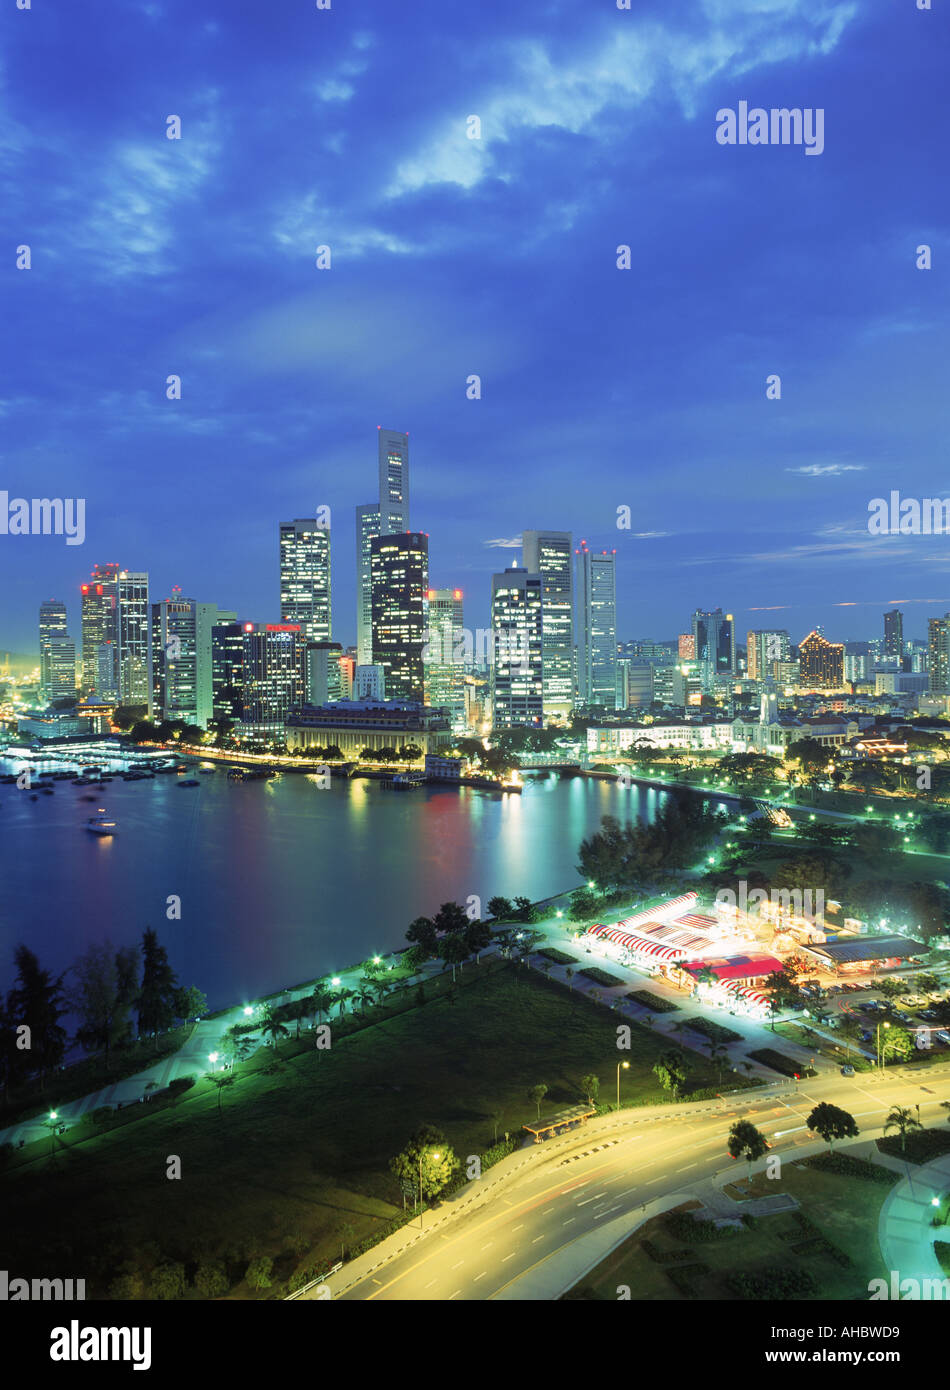 Central business district of Singapore over Marina Park at night - Stock Image